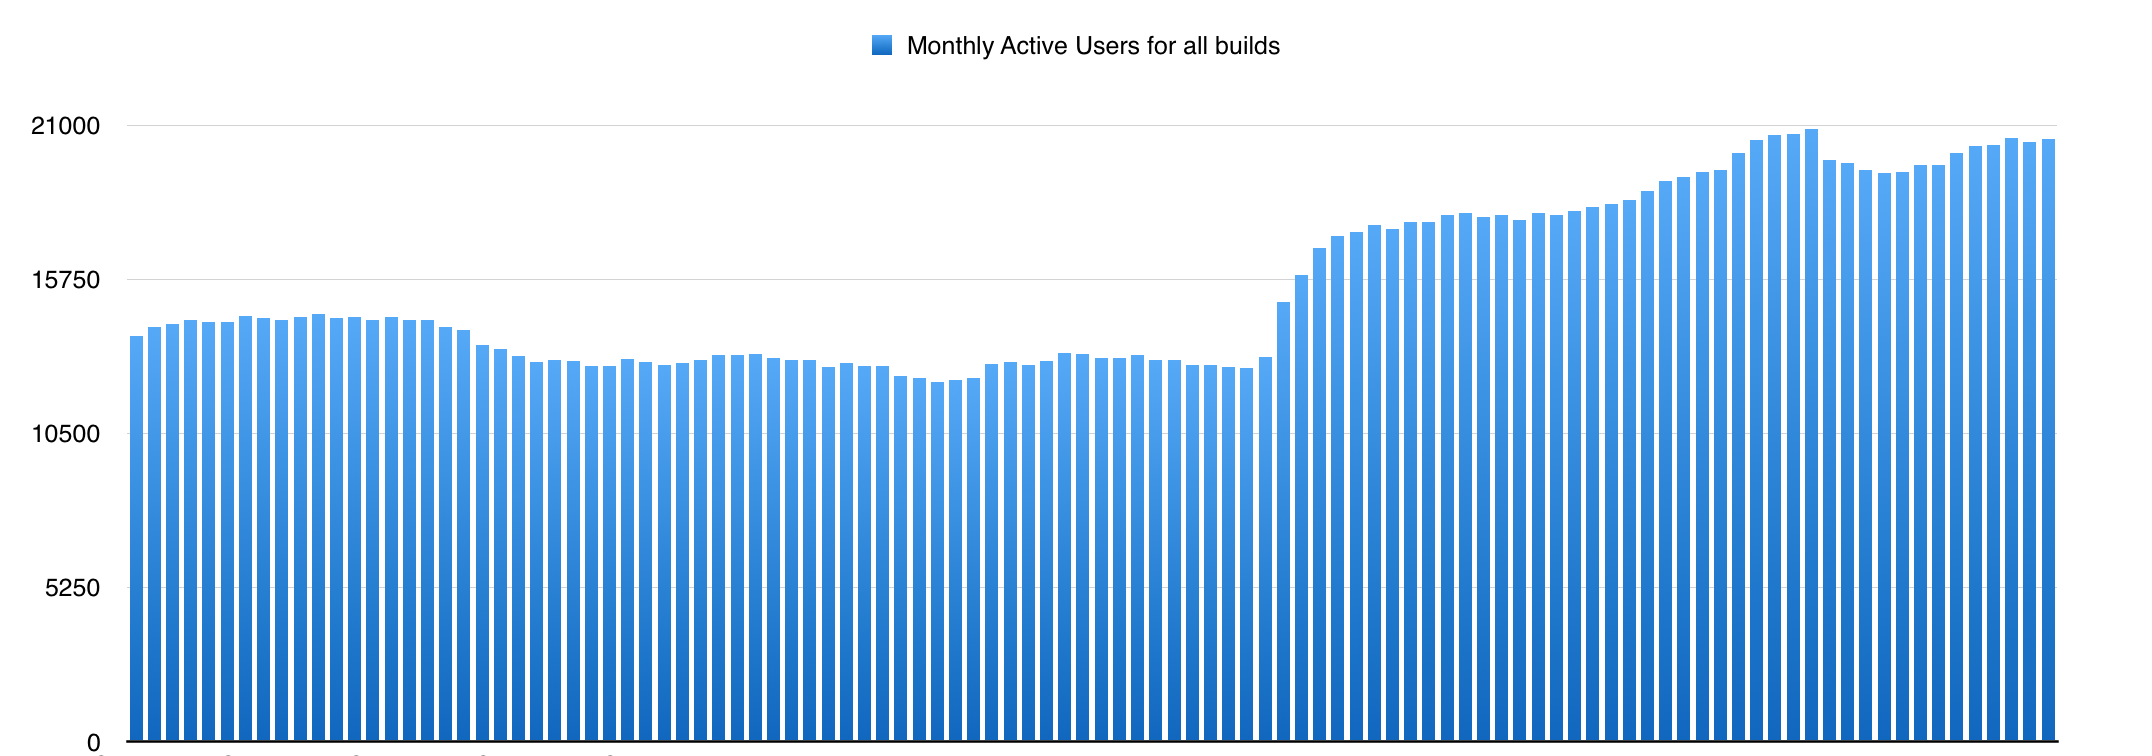 Growth in Monthly Active Users